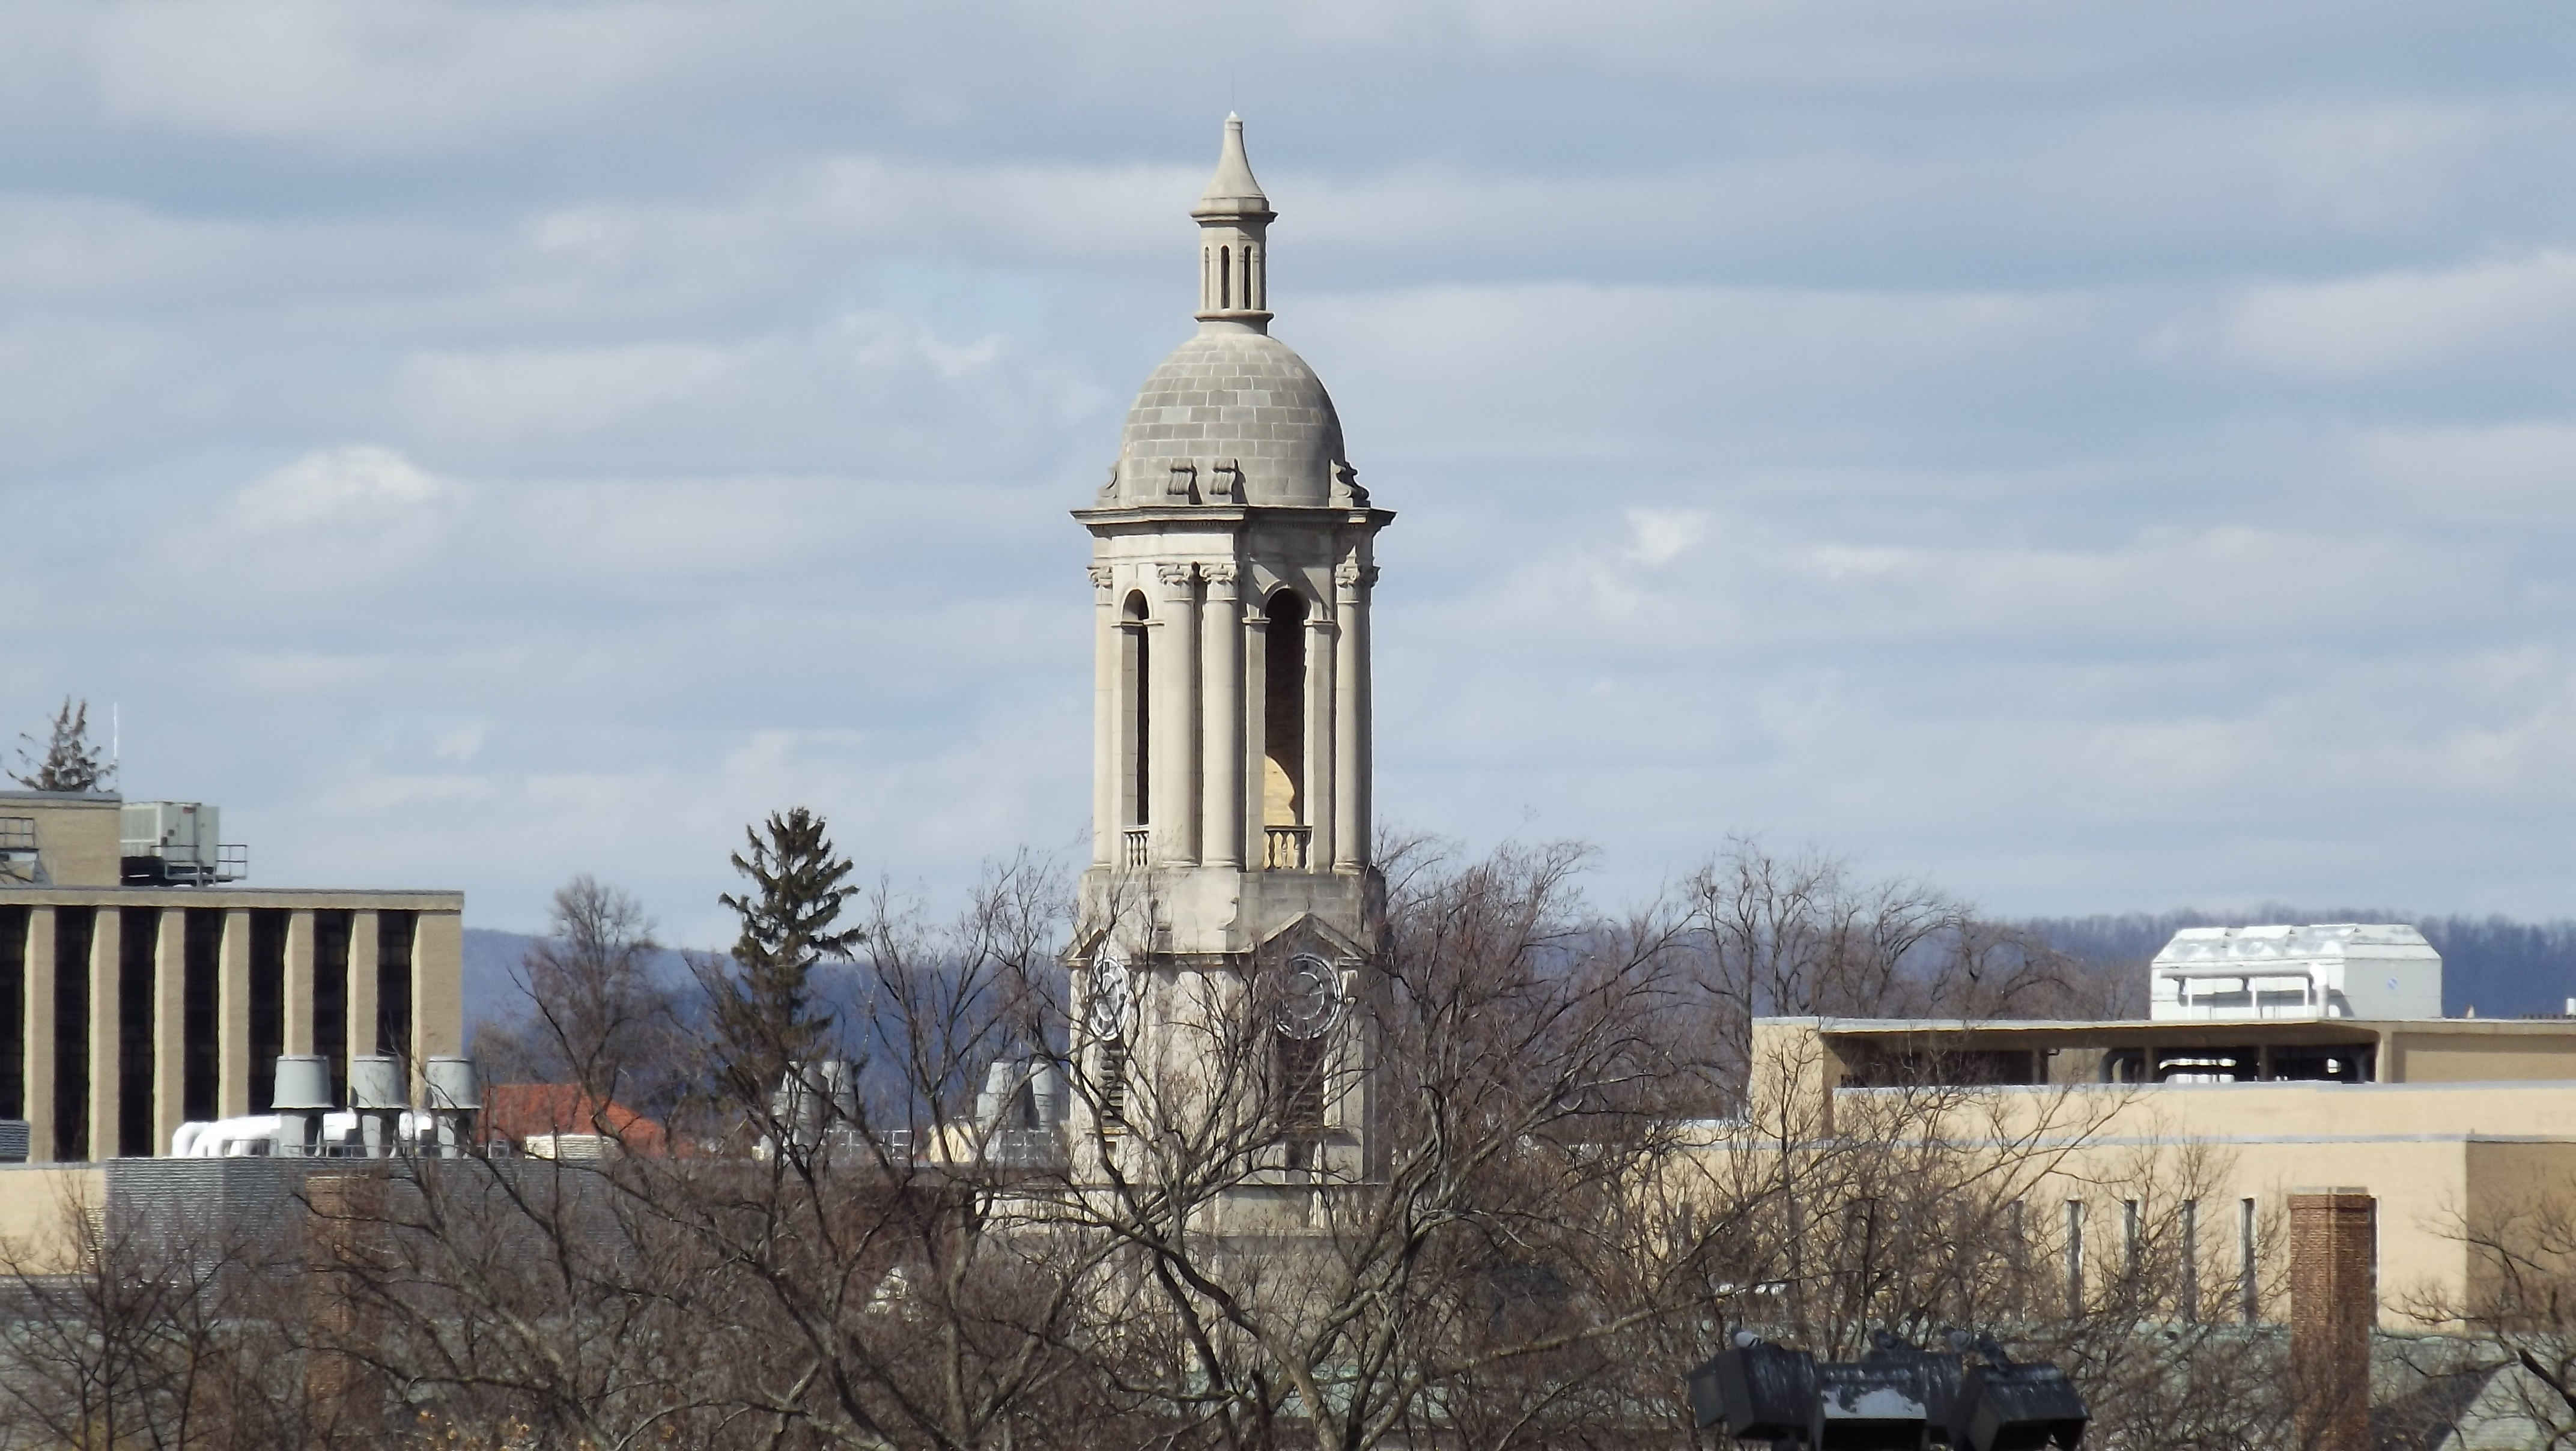 Penn State Plots New Course For On-Campus Green Infrastructure